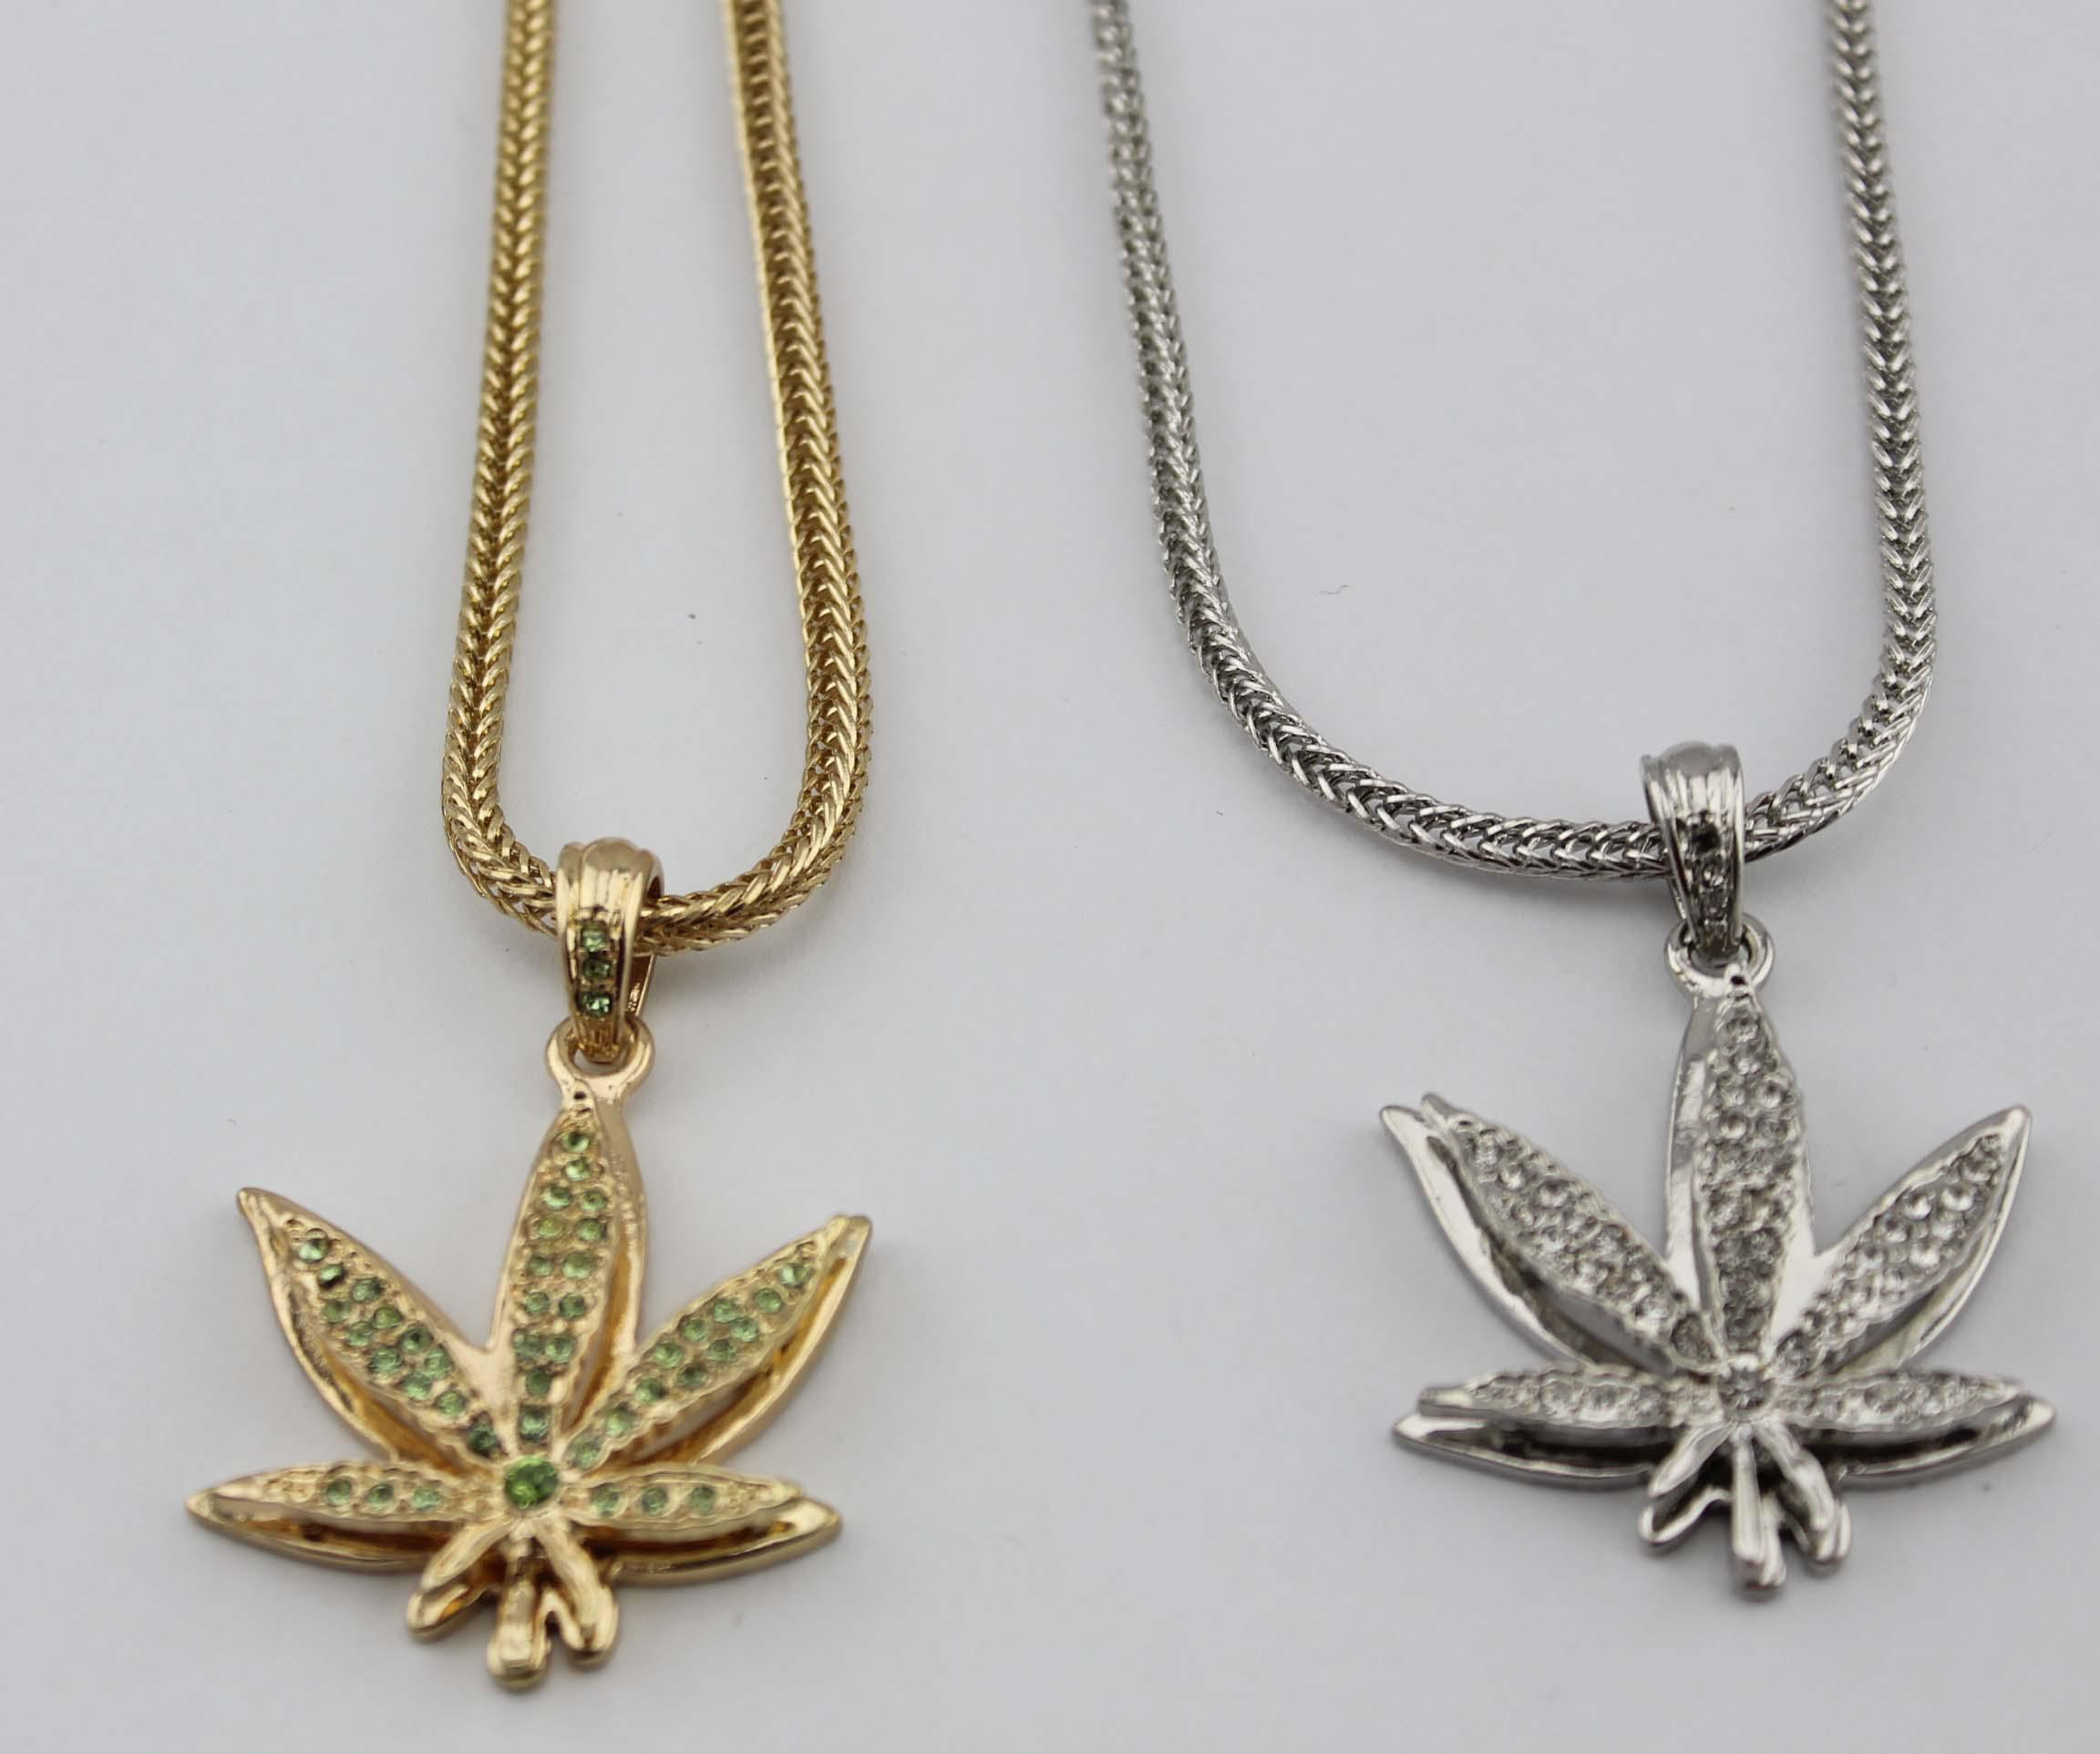 Wholesale hip hop jewelry men jewelry bling bling necklace iced out wholesale hip hop jewelry men jewelry bling bling necklace iced out flower pendants rappers faveriote letter pendant necklaces horseshoe pendant necklace aloadofball Images